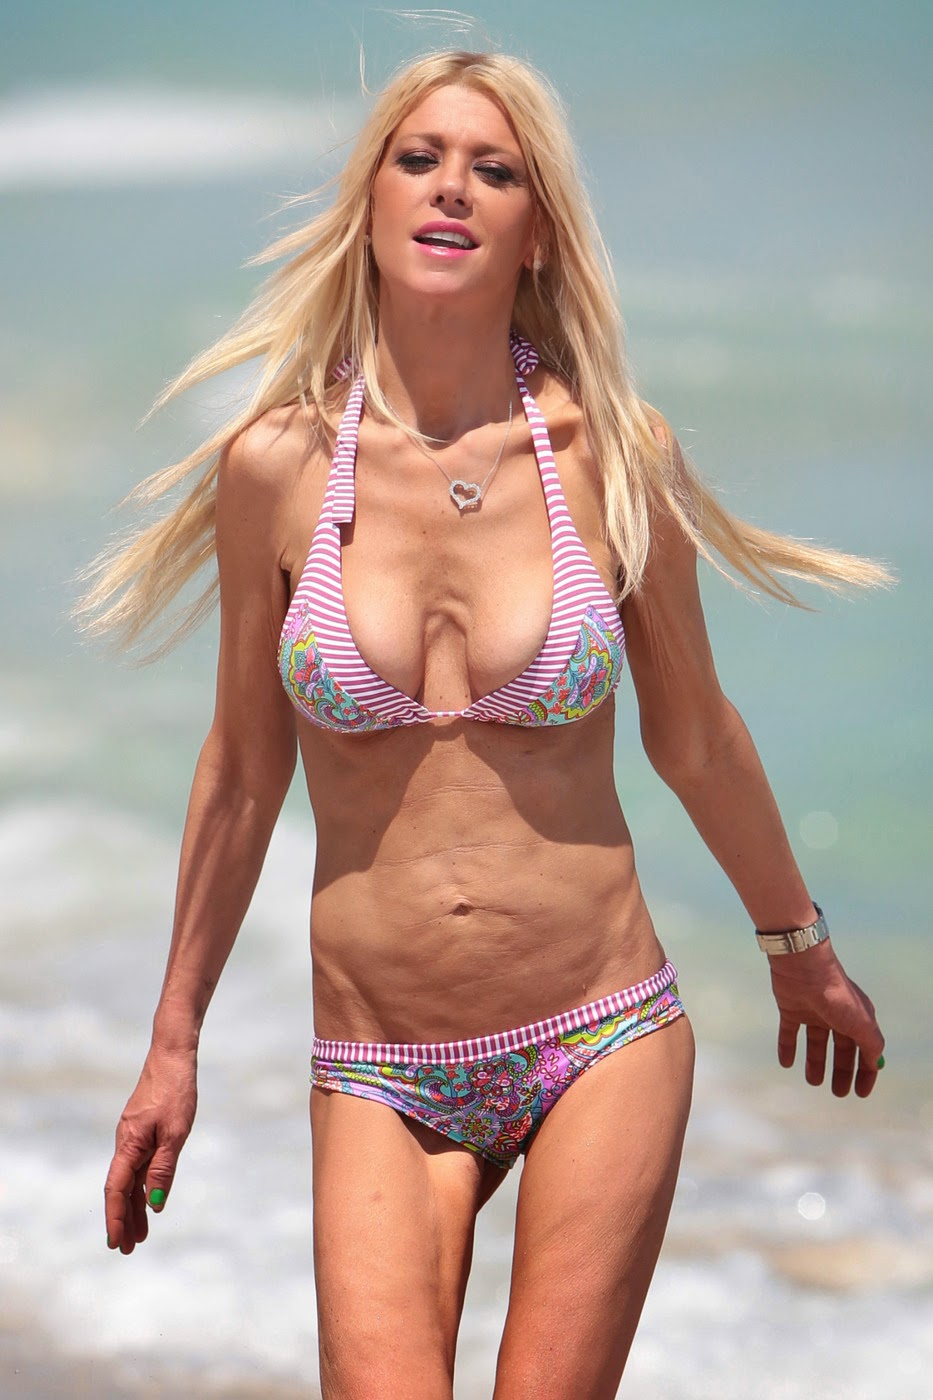 Tara Reid Bikini Pictures Are Interesting